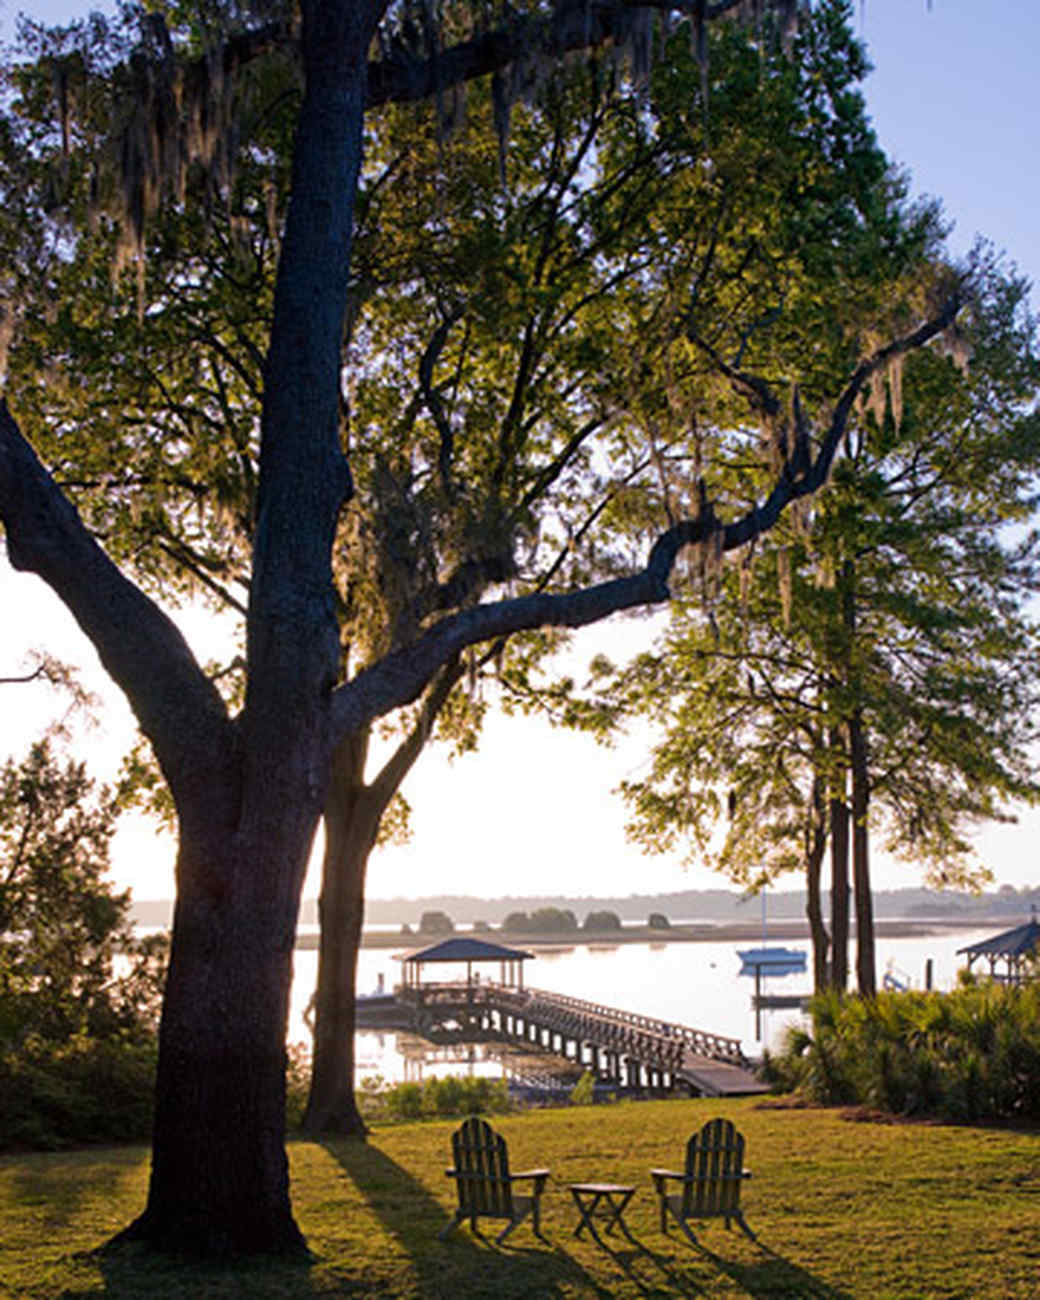 ld104004_0808_tree_dock.jpg